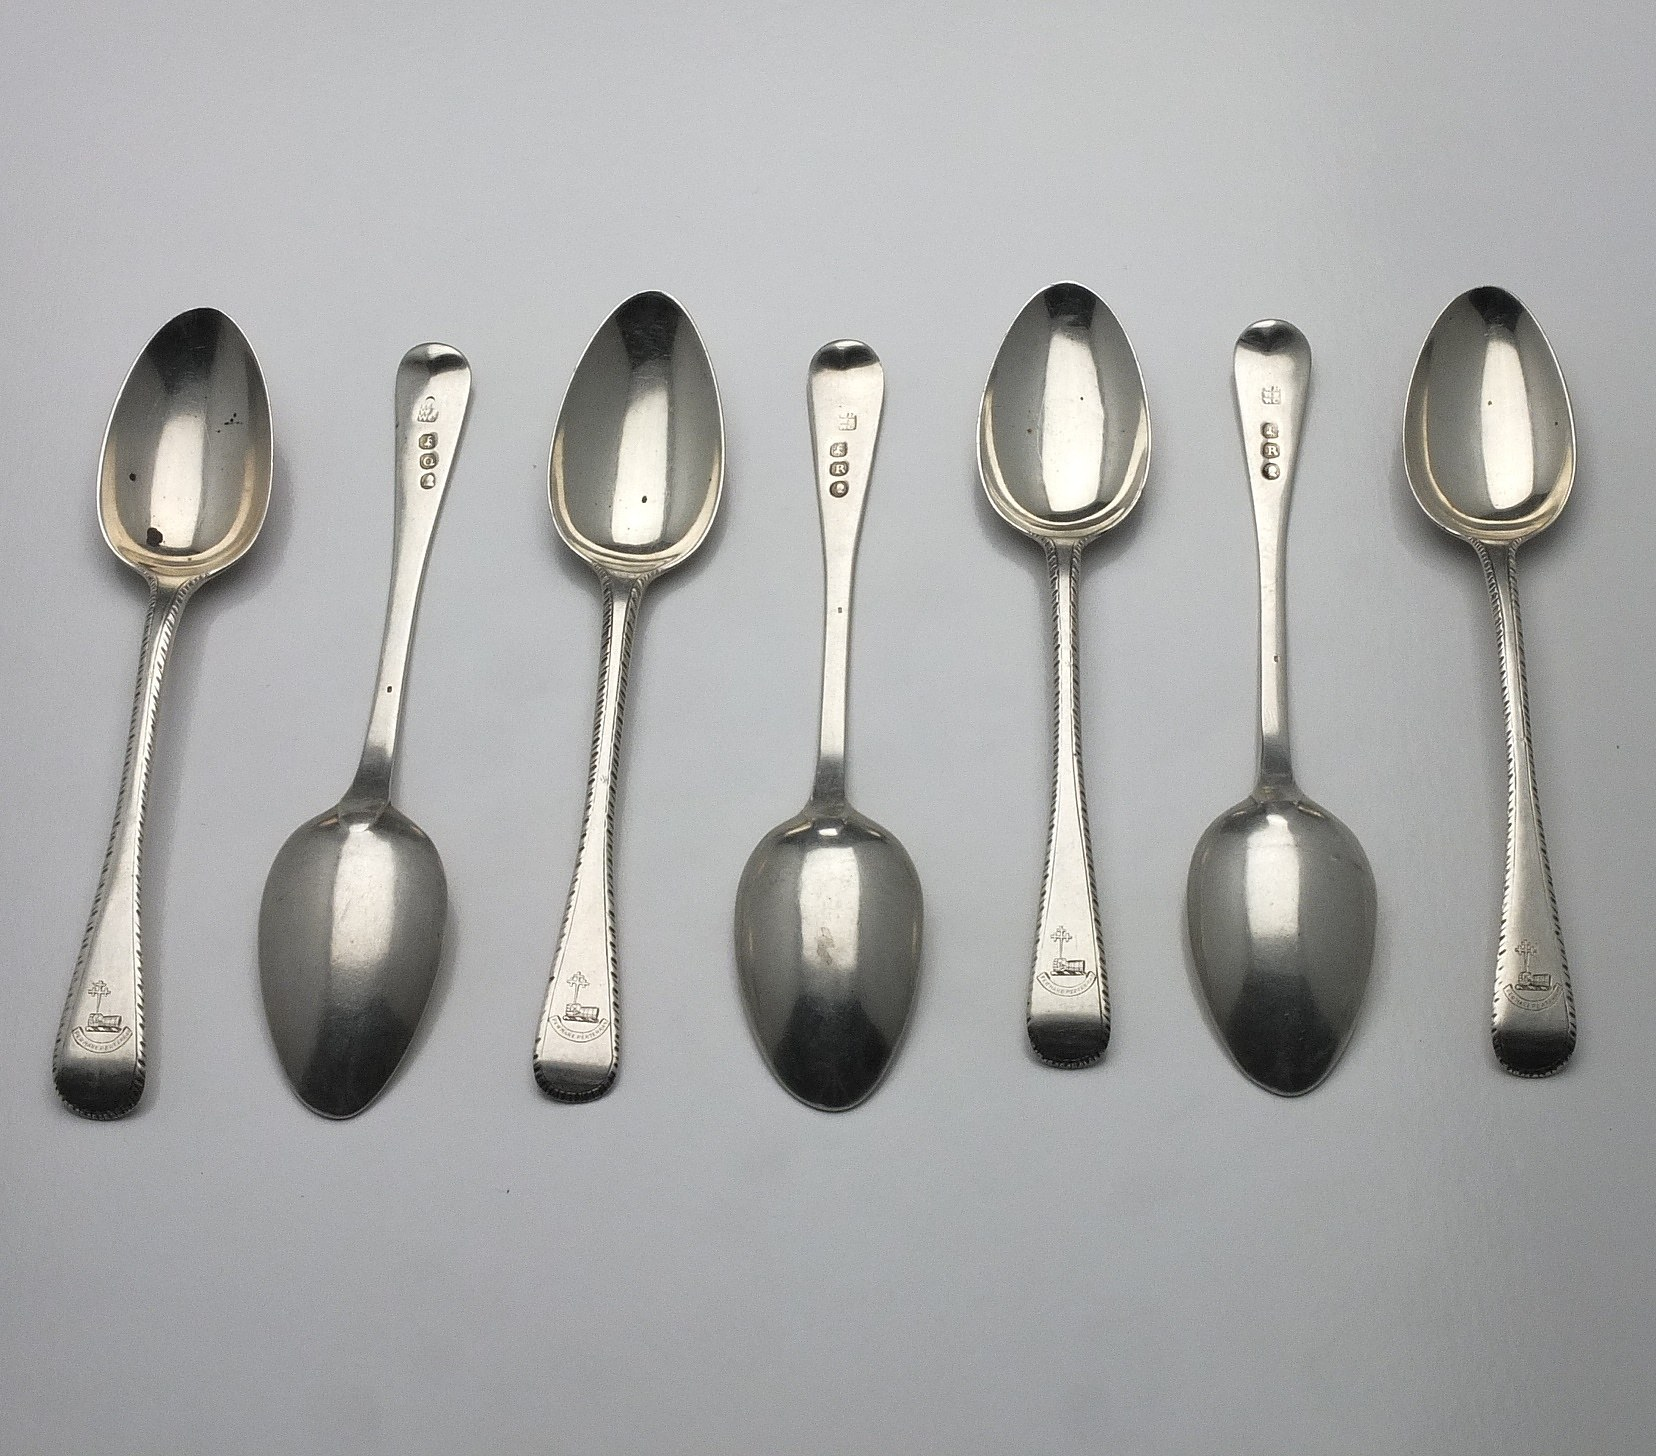 'Seven Georgian Crested Sterling Silver Bright Cut Teaspoons, Including Four William Eley, William Fearn & William Chawner London 1812'